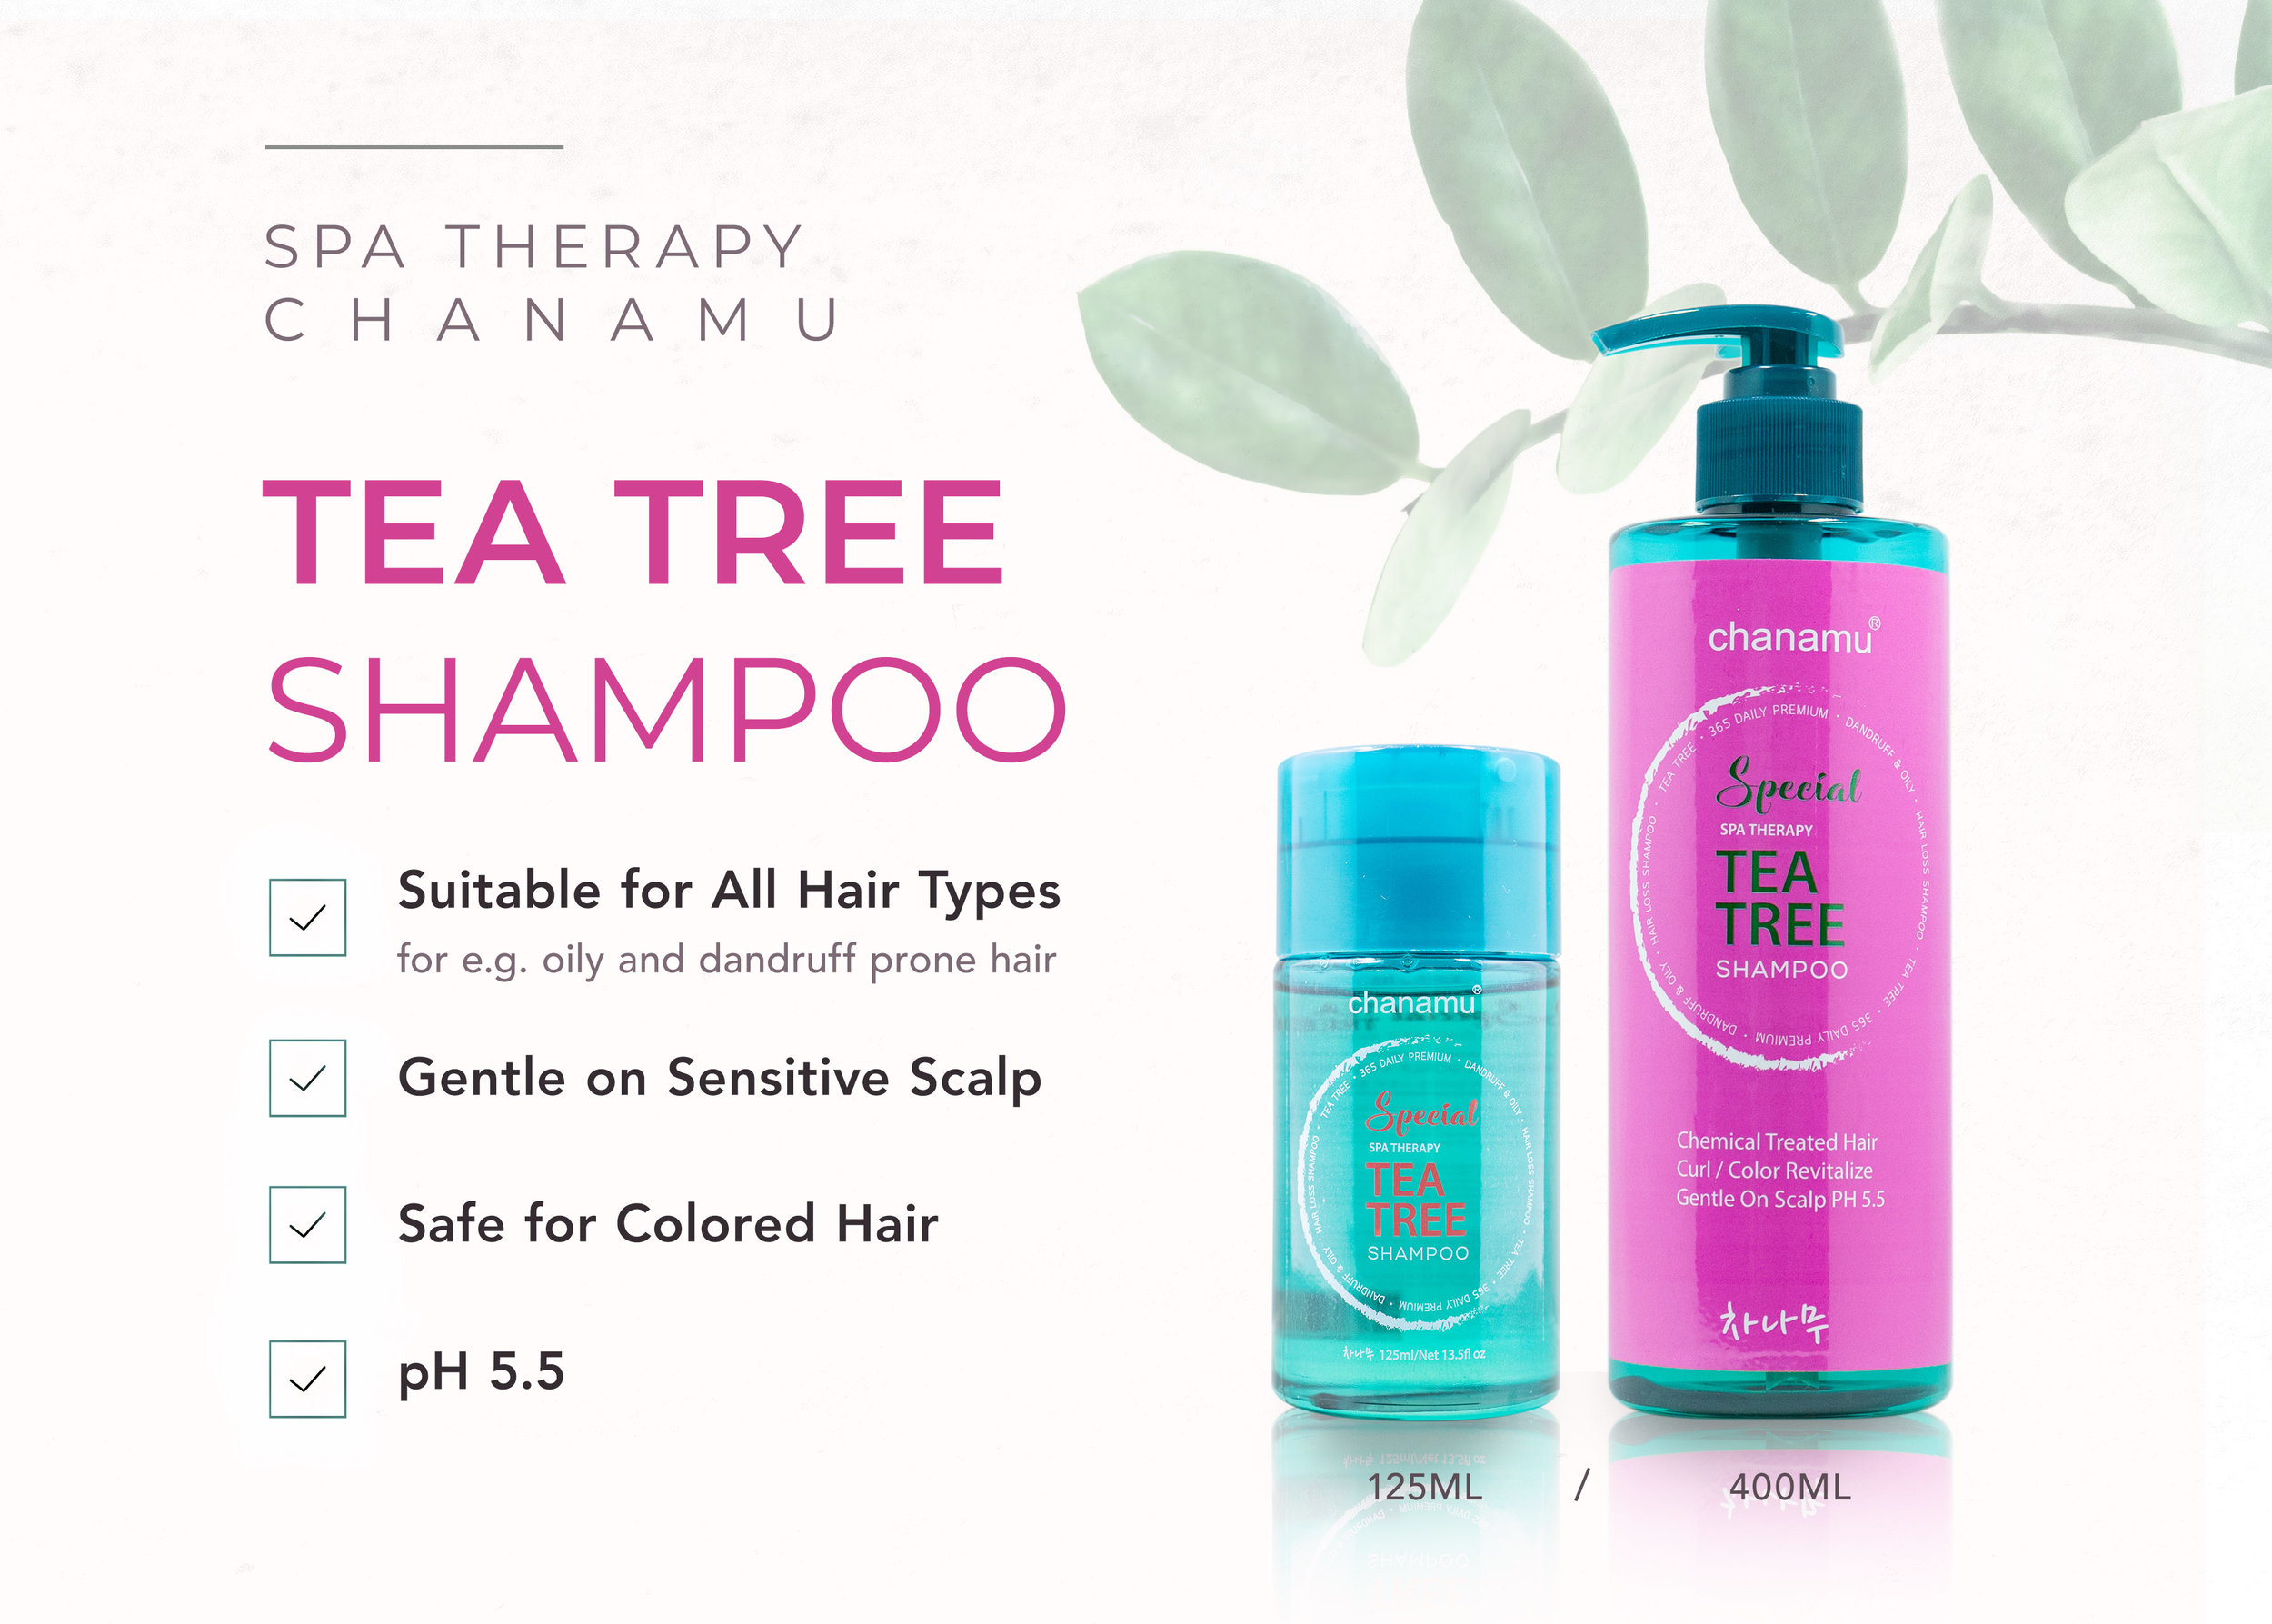 Chanamu Tea Tree Shampoo in travel and full bottle sizes with a leaf background. Shows who this shampoo is for, such as a lady with oily and dandruff prone hair and works for coloured hair too.